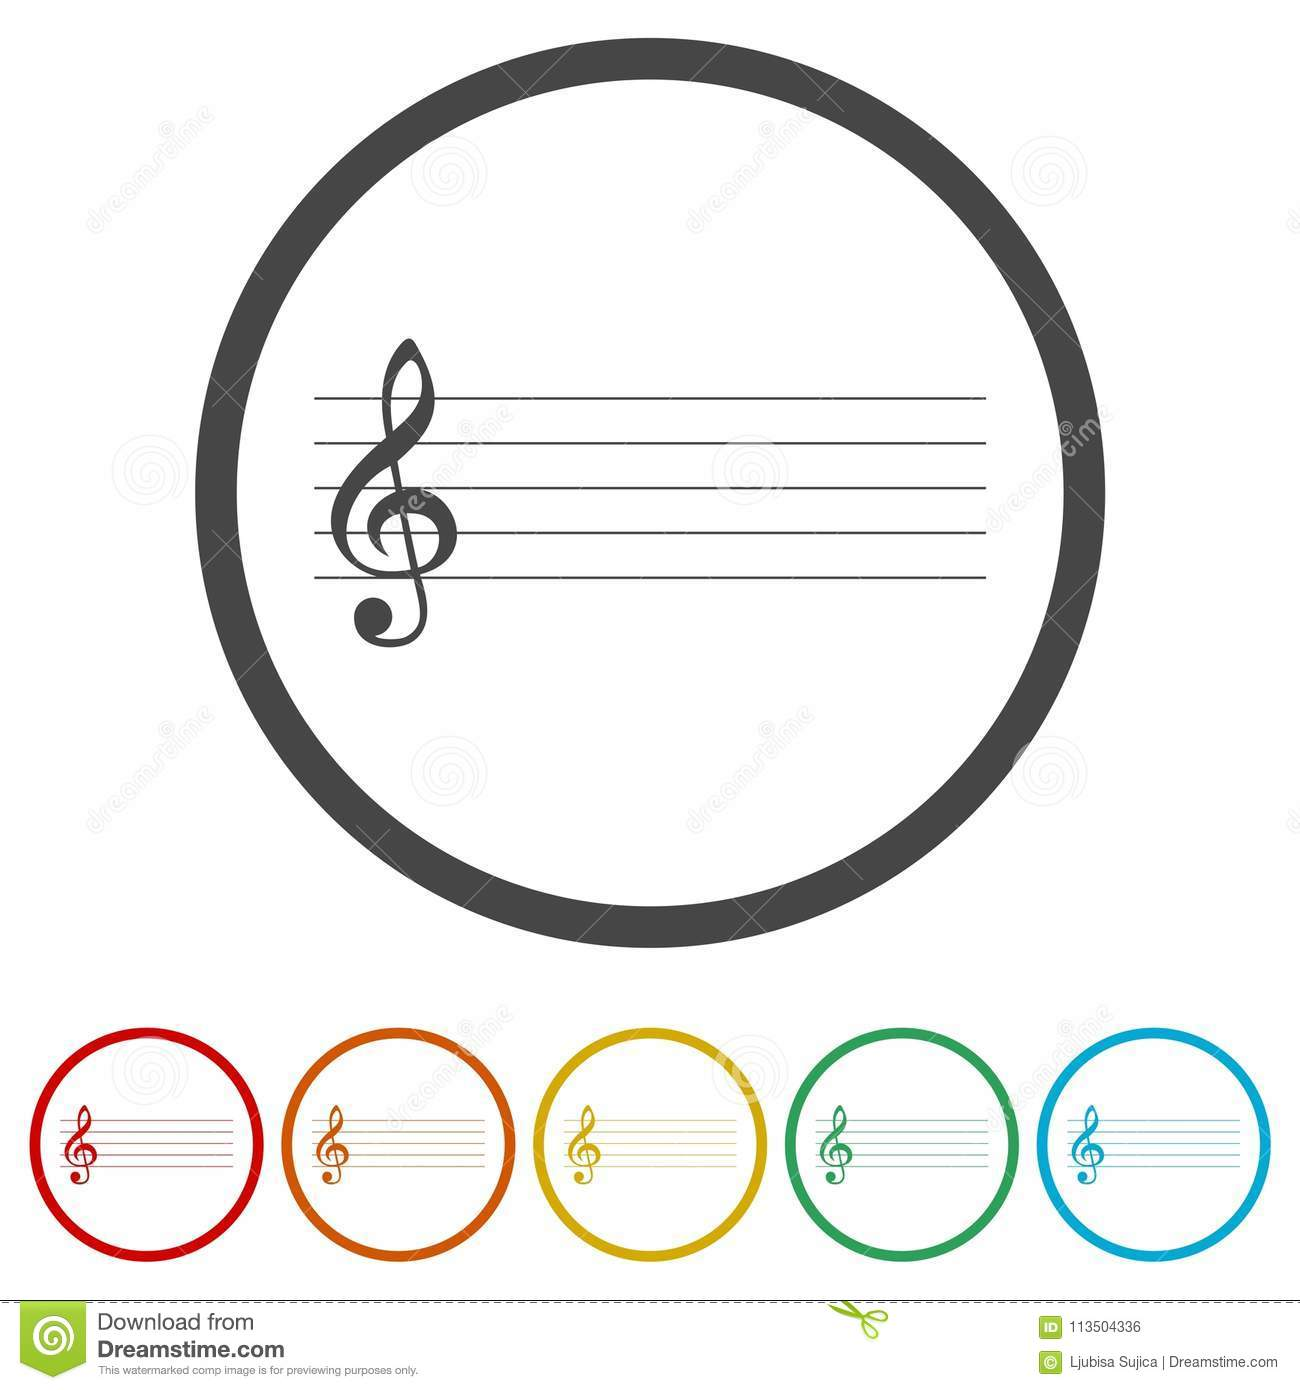 7a1939b91 Treble Clef icon, Musical key, 6 Colors Included, simple vector icons set